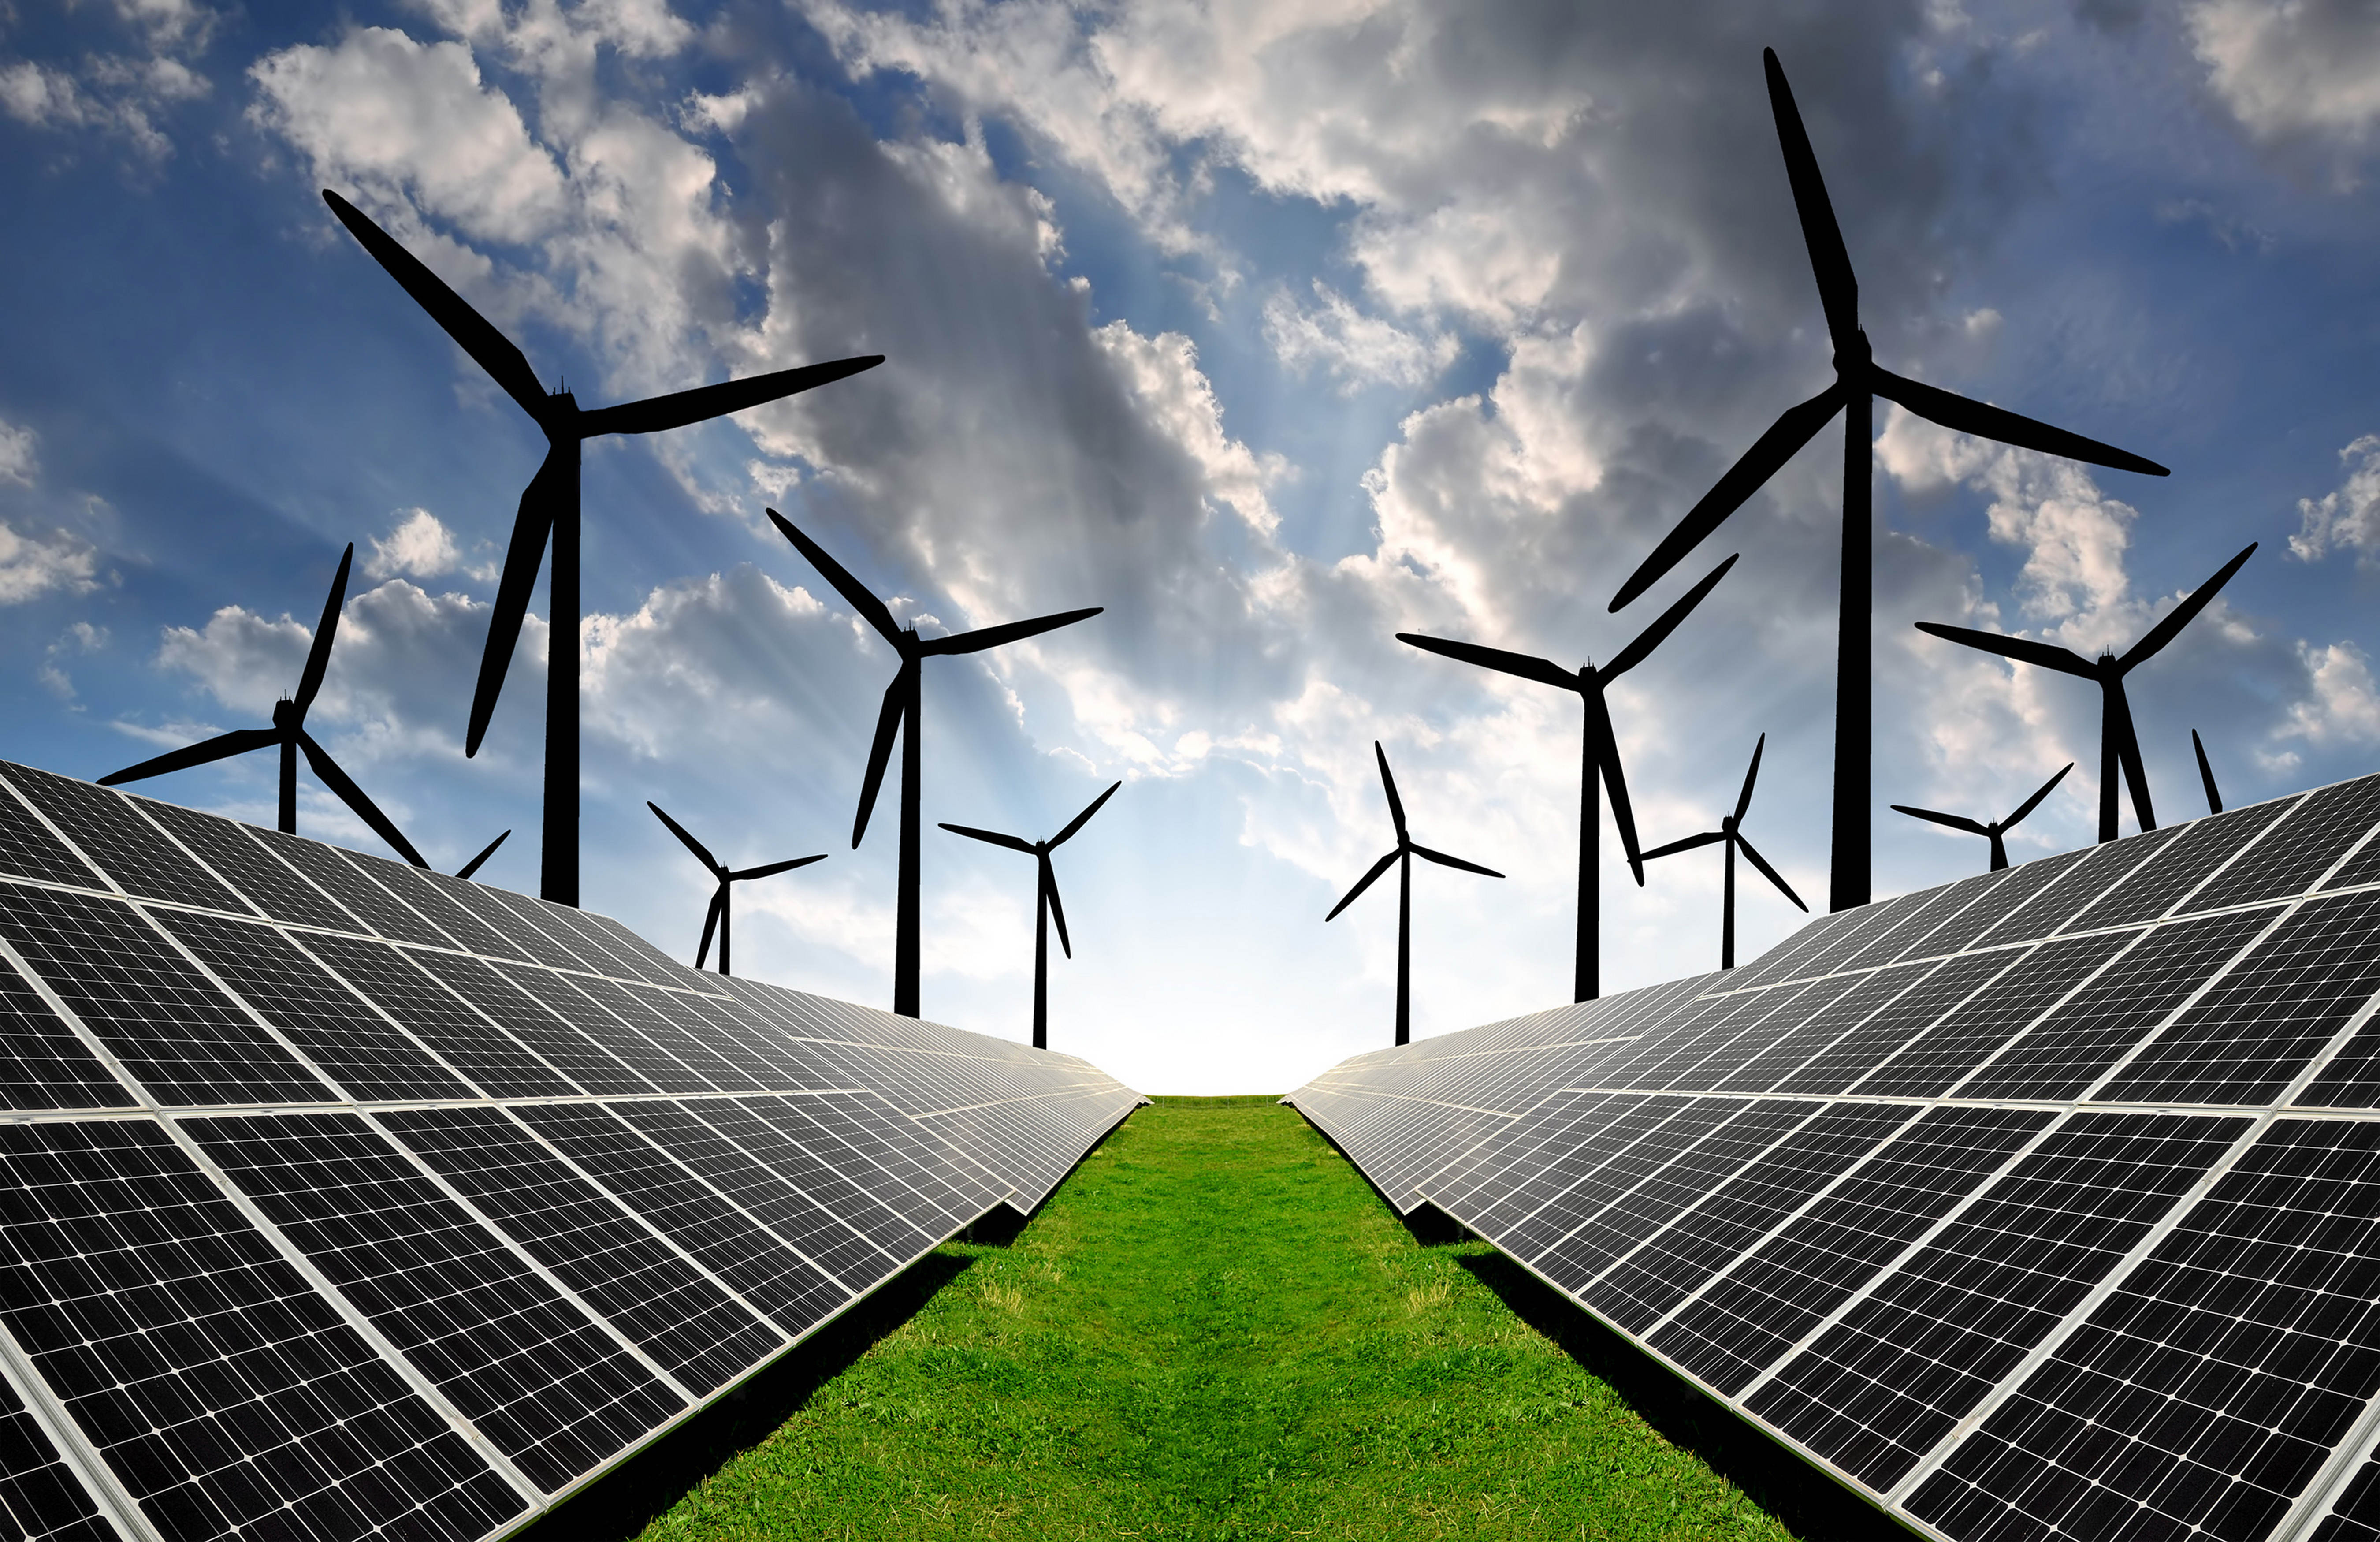 ?solar energy: earthís future essay What is the importance of solar energy in our daily life, for environment and economy this essay and speech shows why solar energy is important.